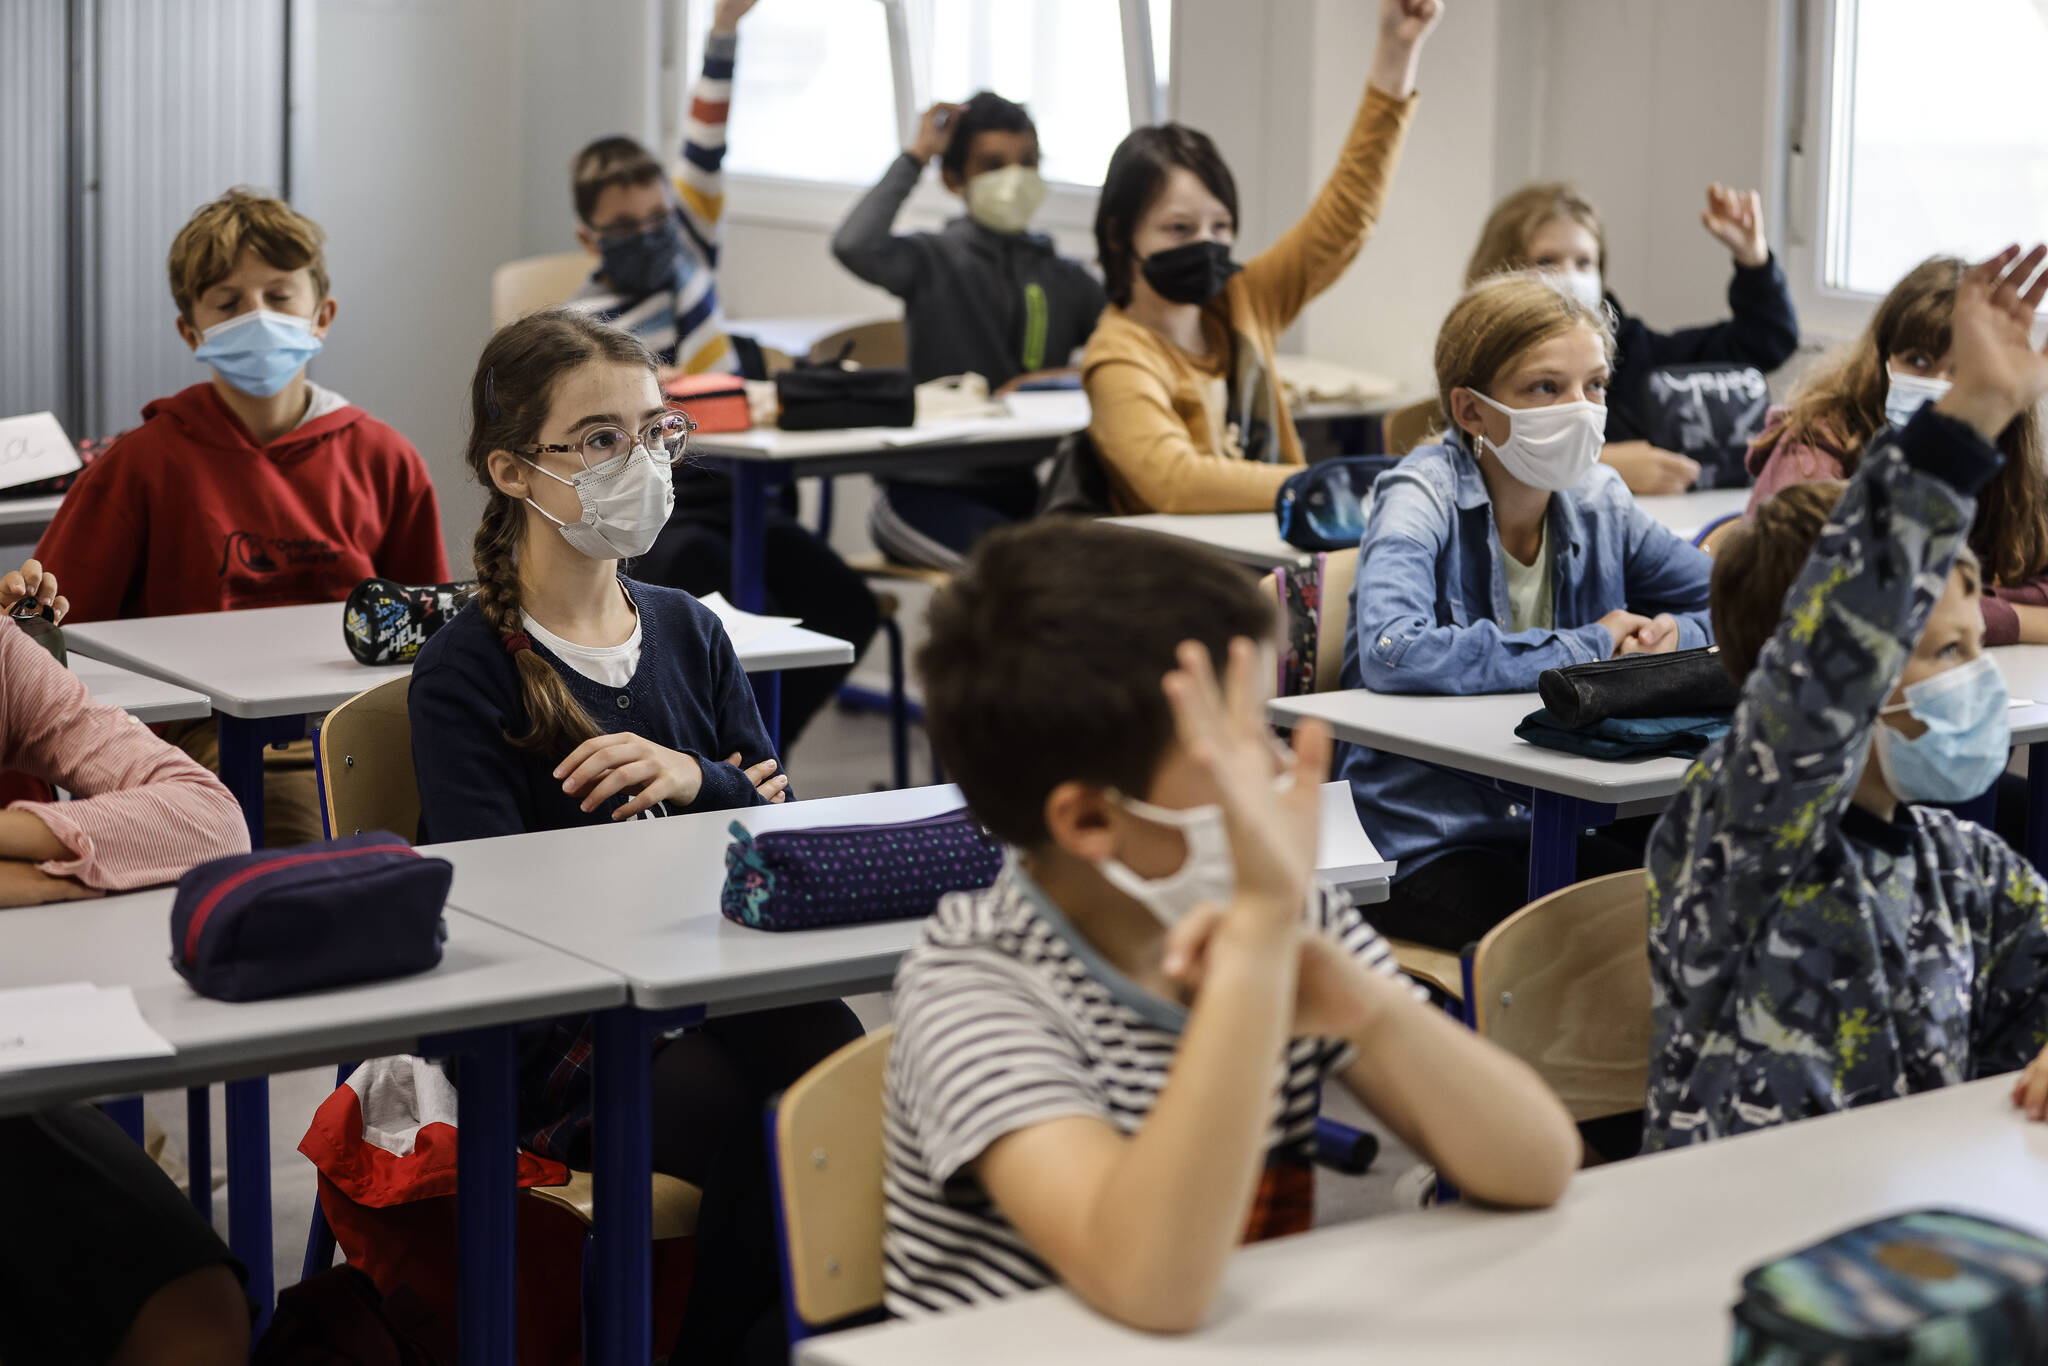 Children at school in Strasbourg, France, Sept. 2, 2021. B.C. has extended its mask rules to include children from kindergarten to grade three until at least January. (AP Photo/Jean-François Badias)